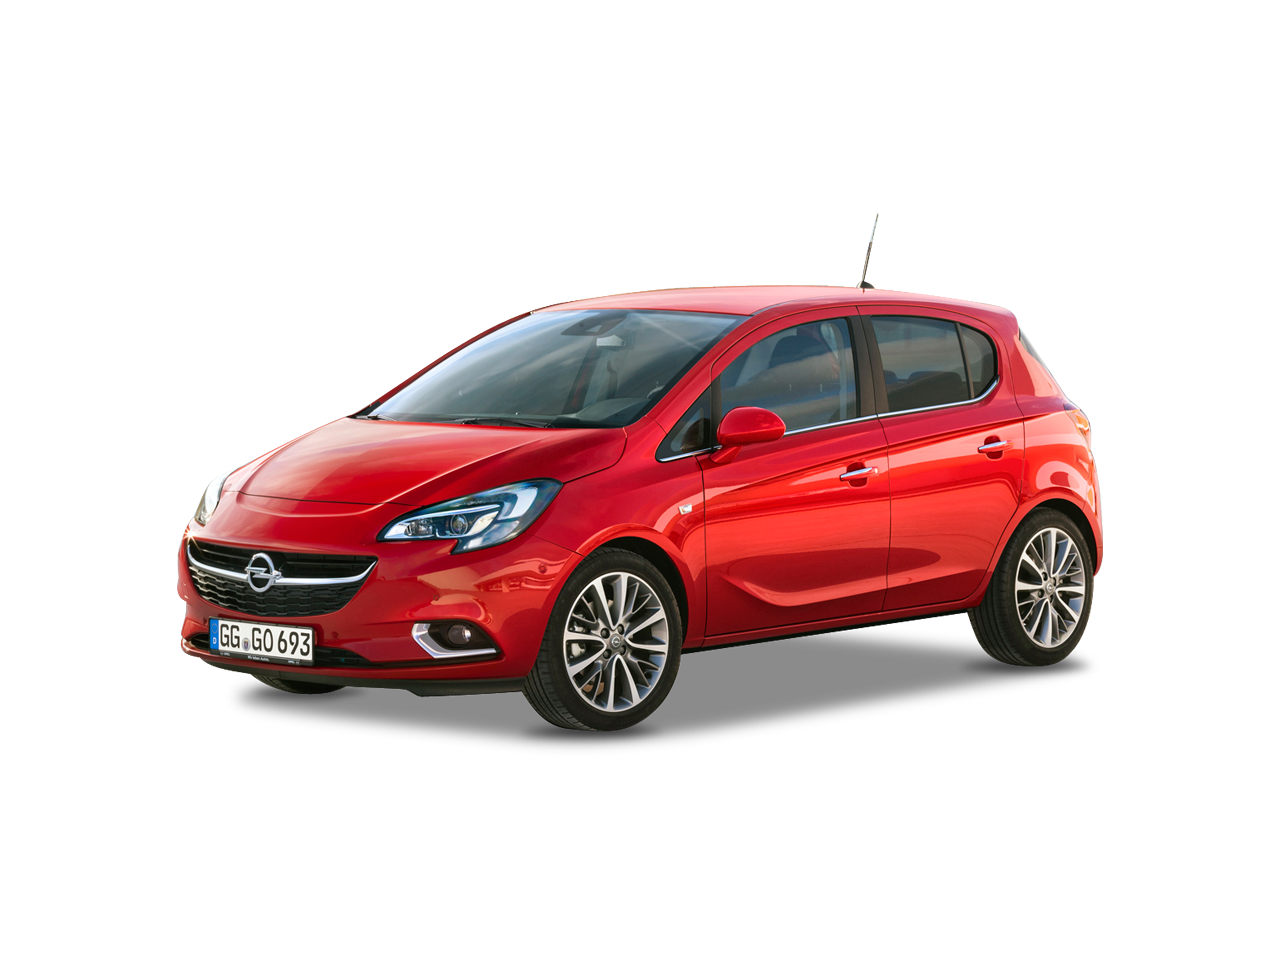 Opel PNG Image Opel, Car, Png photo